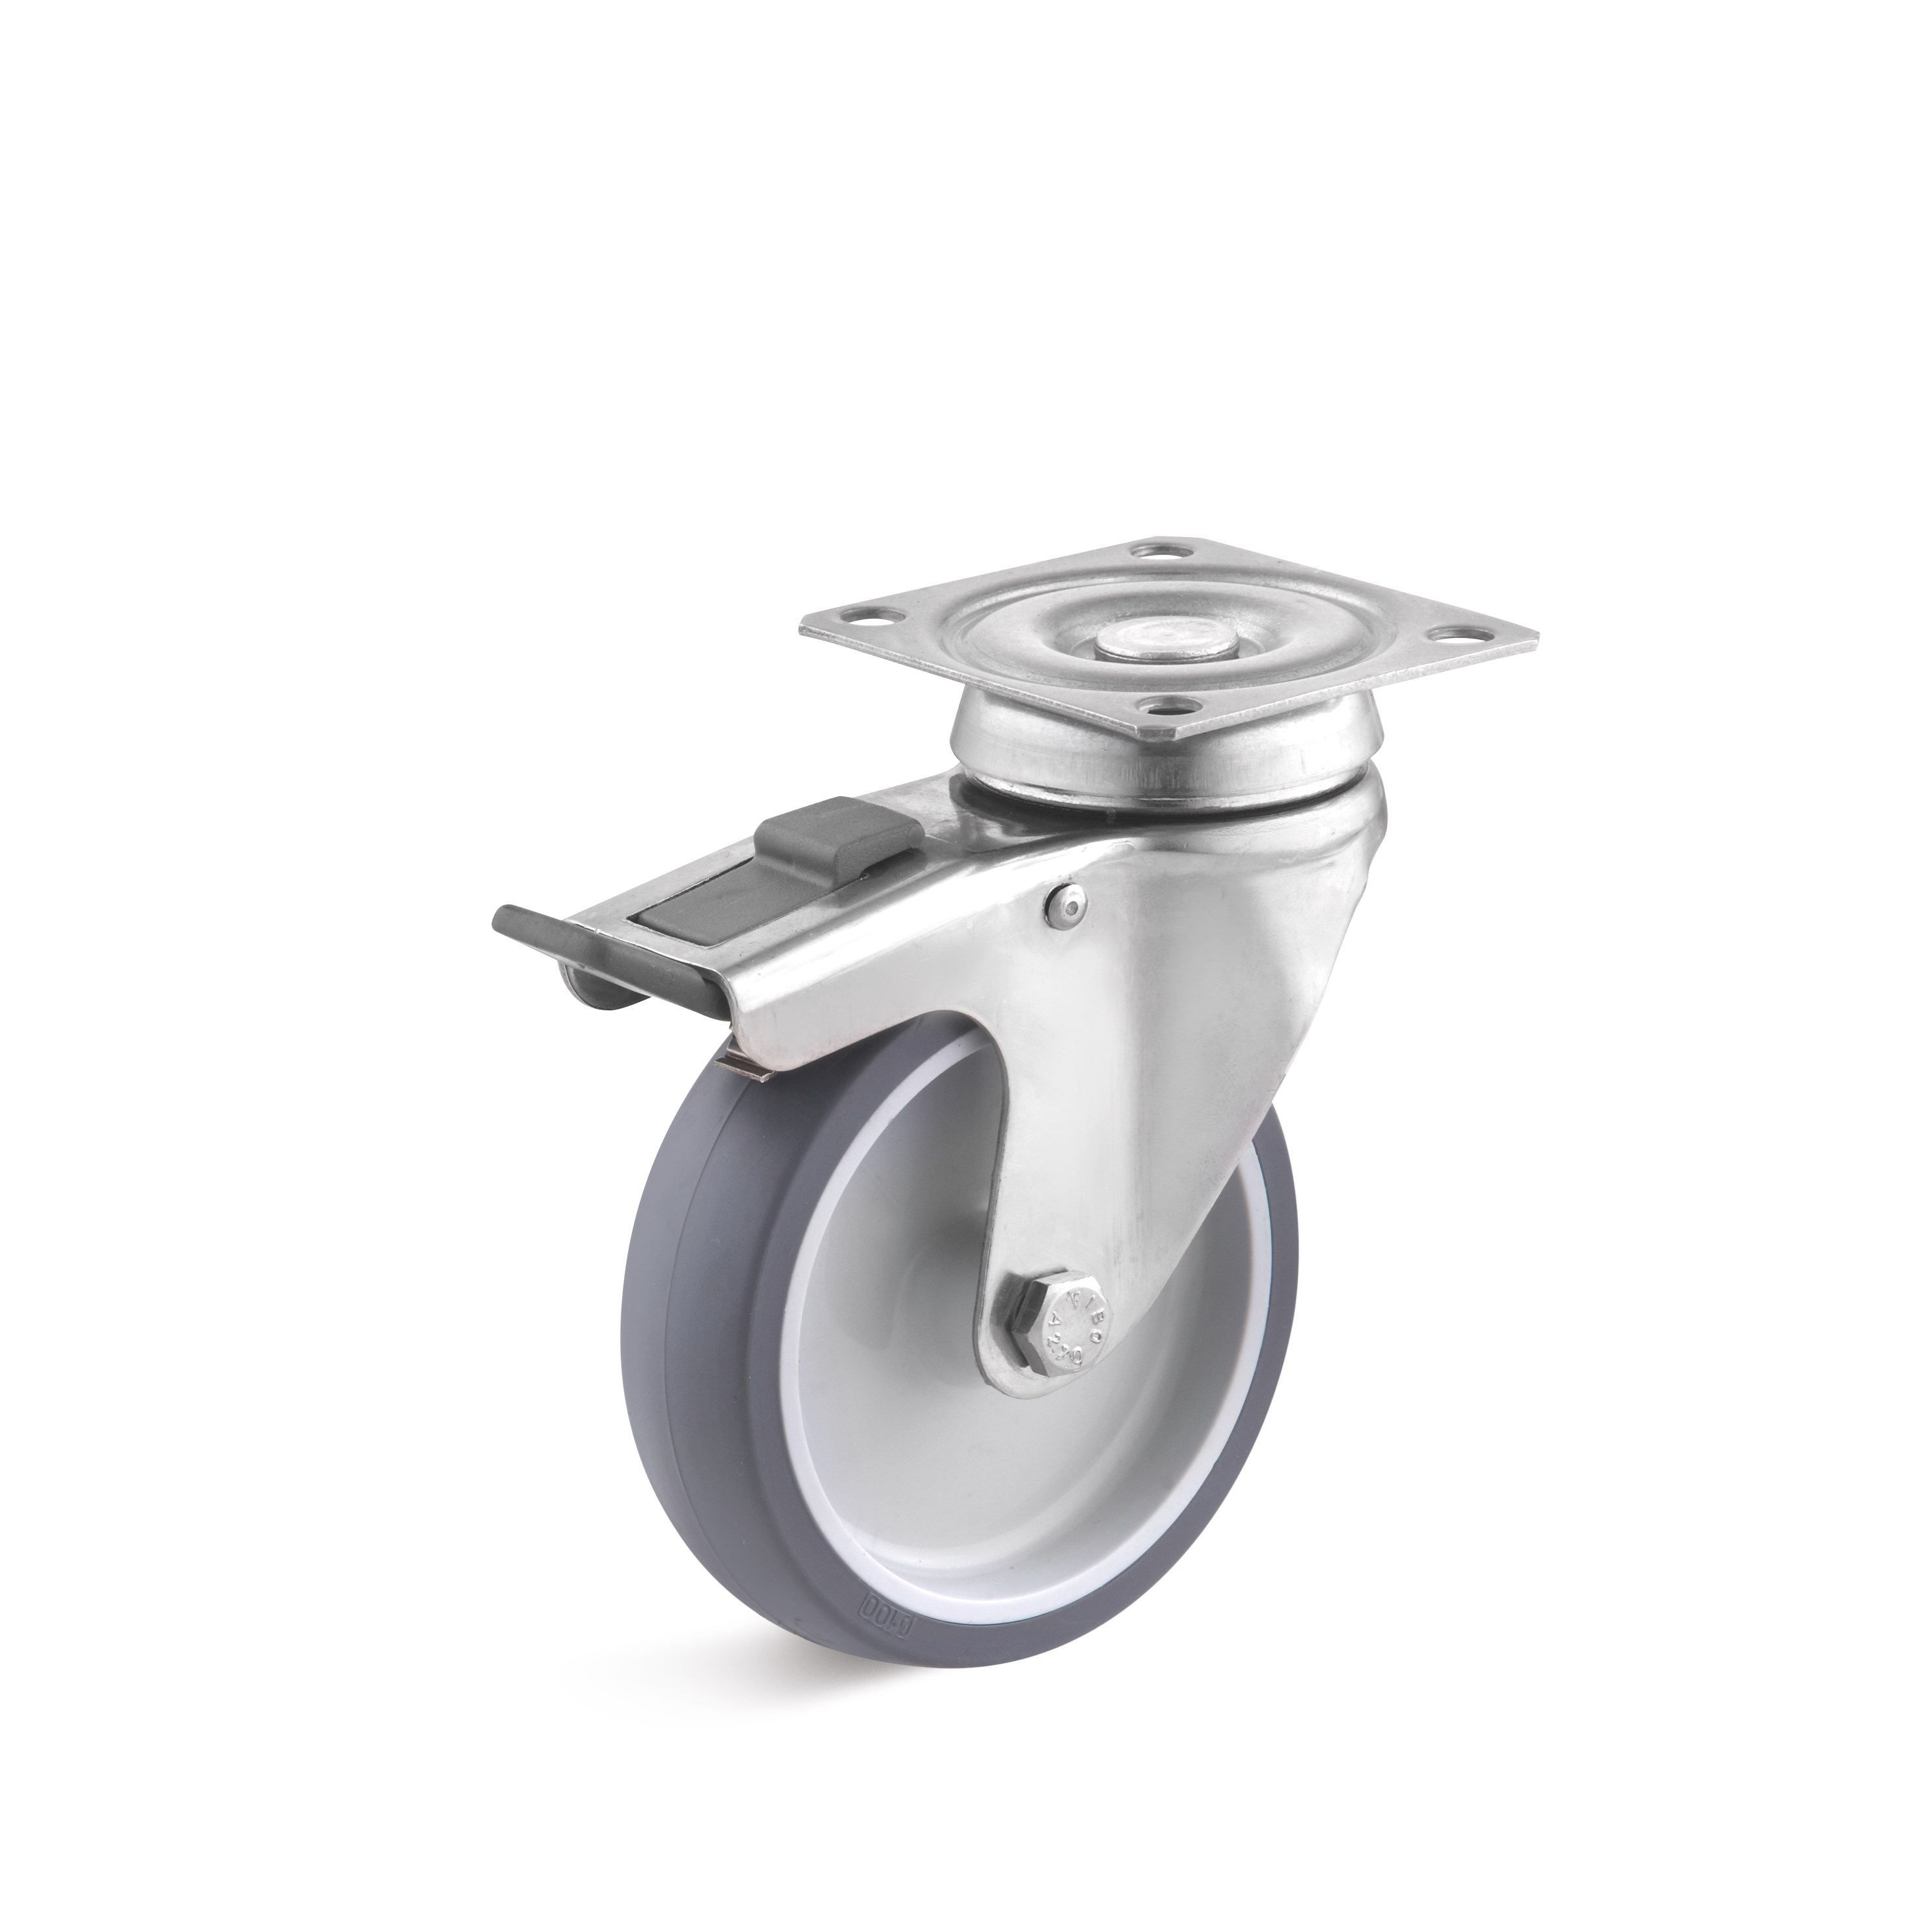 Stainless steel swivel castor with double stop and thermoplastic wheel